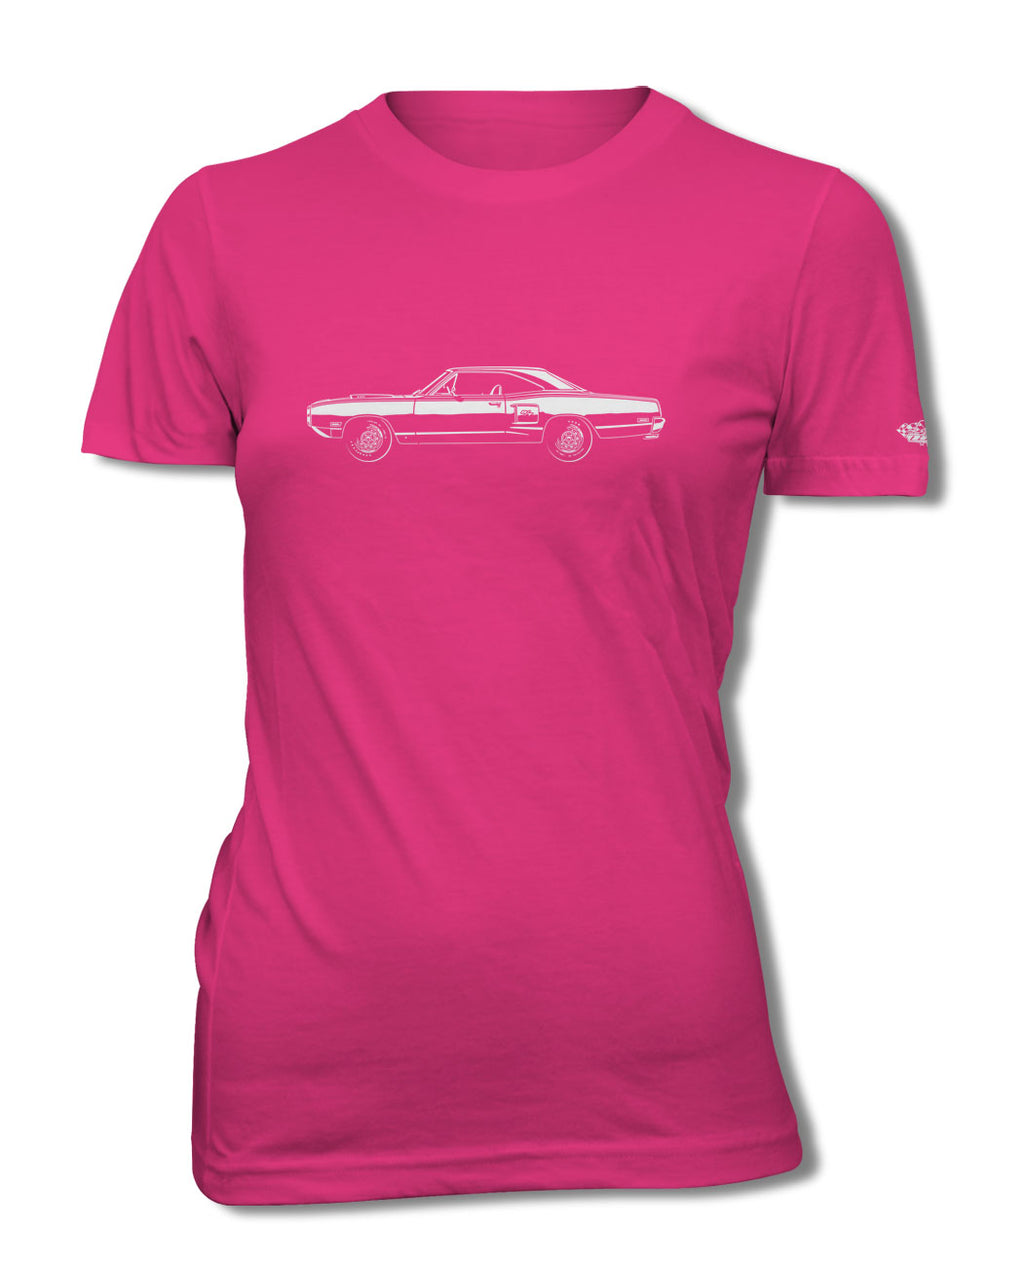 1970 Dodge Coronet RT 440 Hardtop T-Shirt - Women - Side View